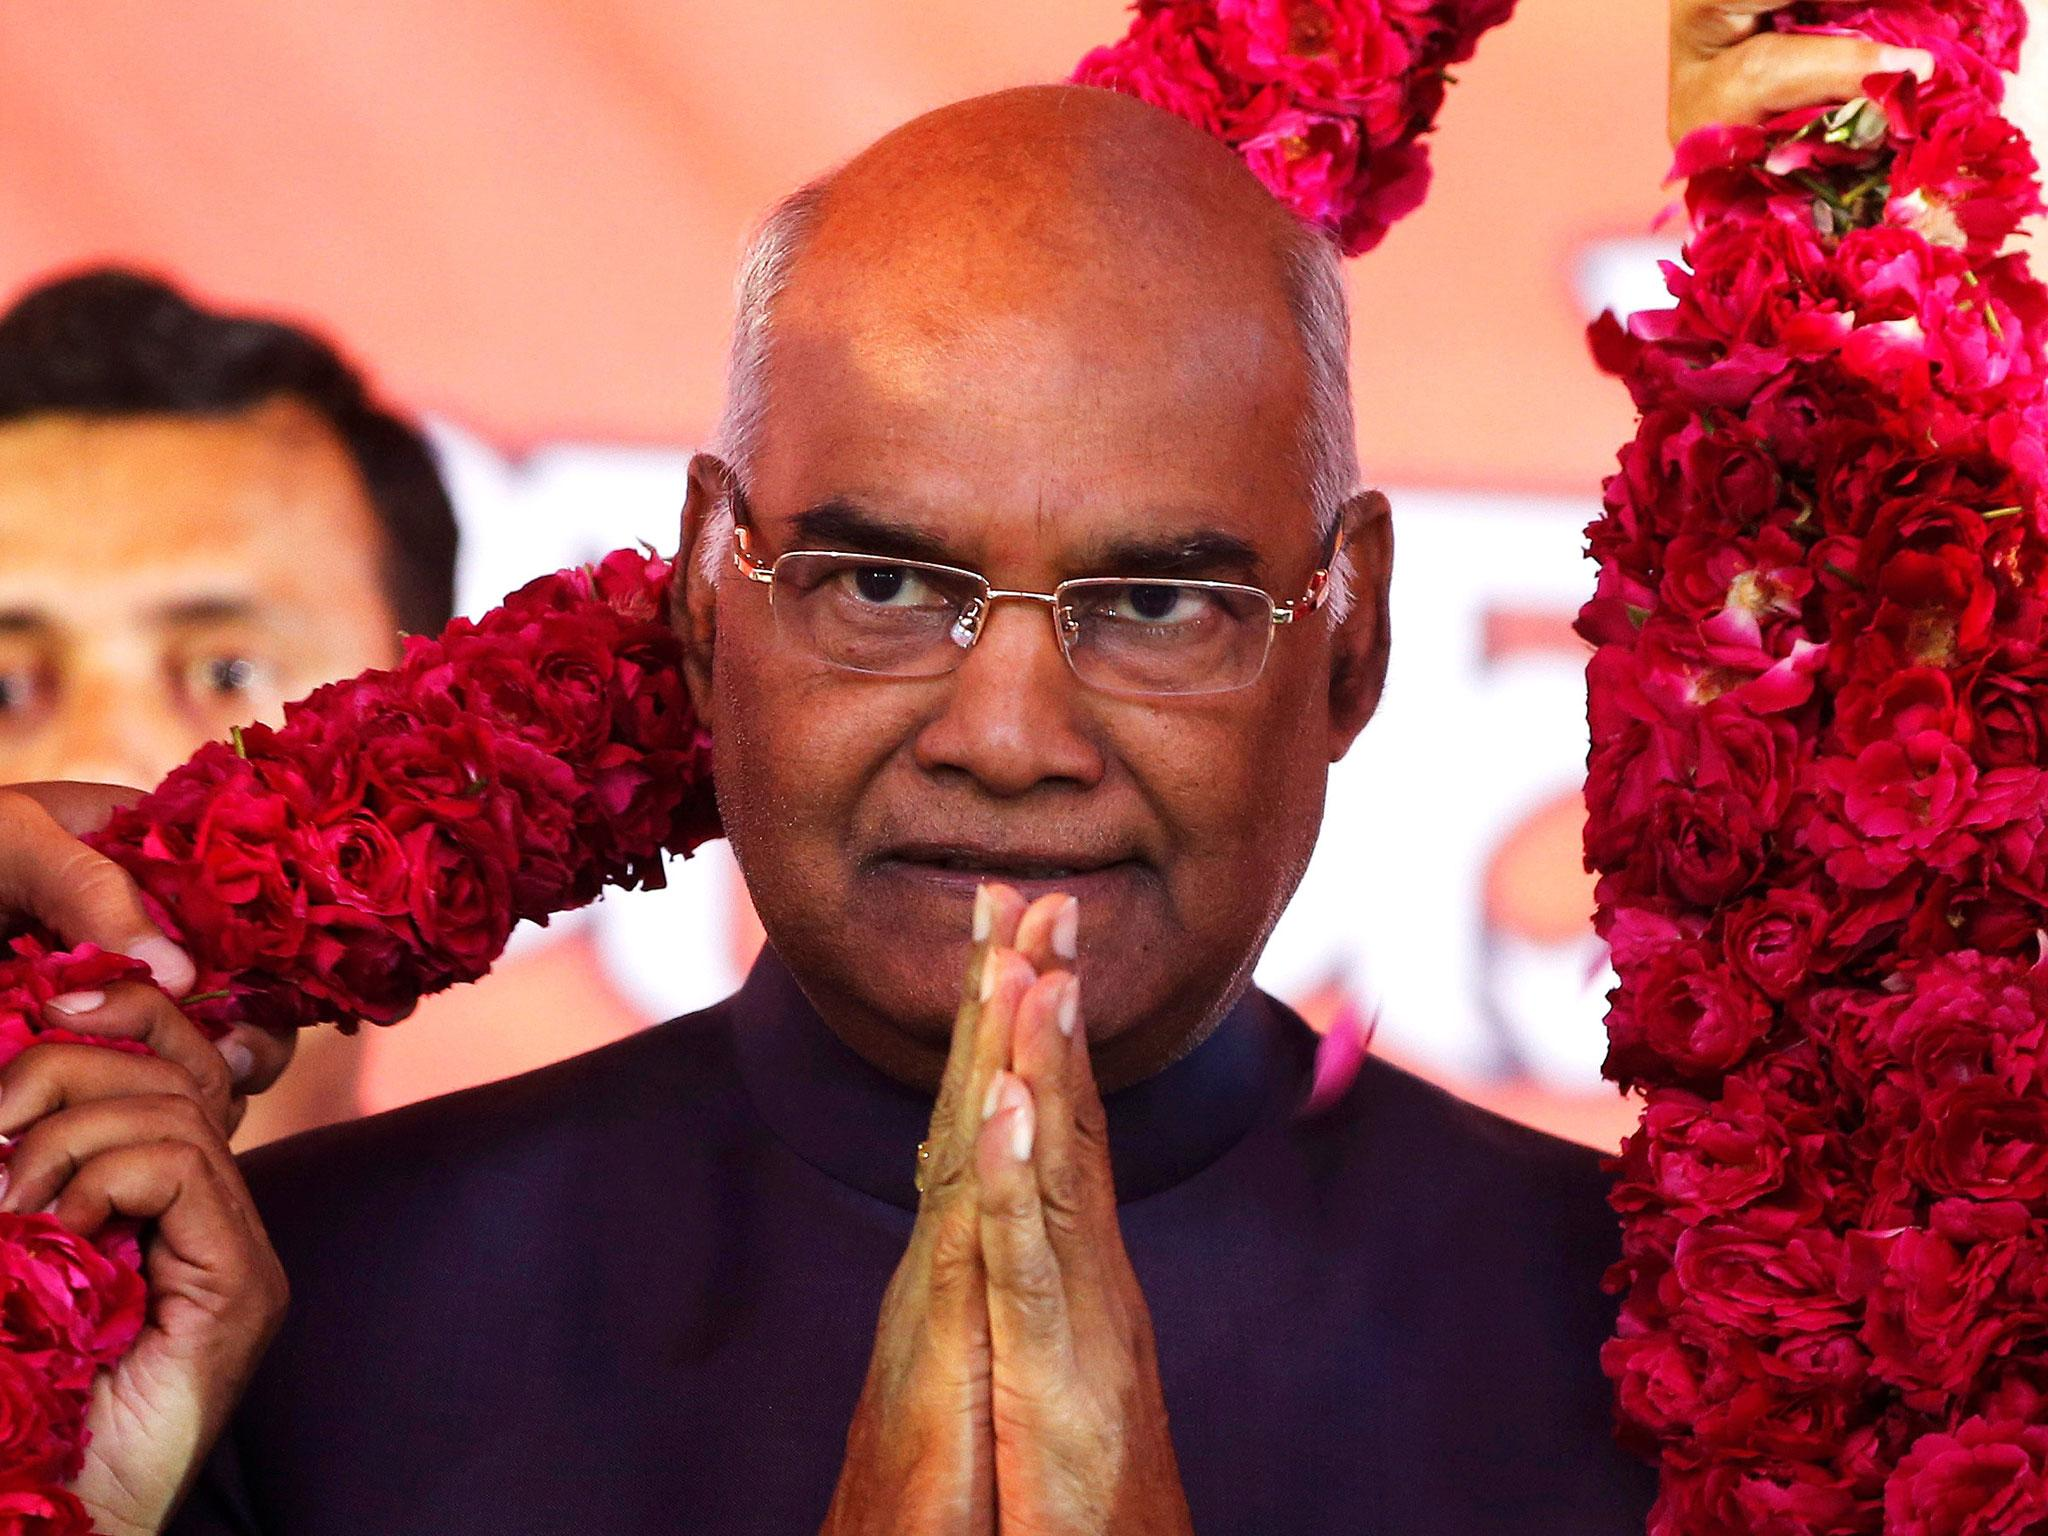 Ram Nath Kovind: India's 14th President